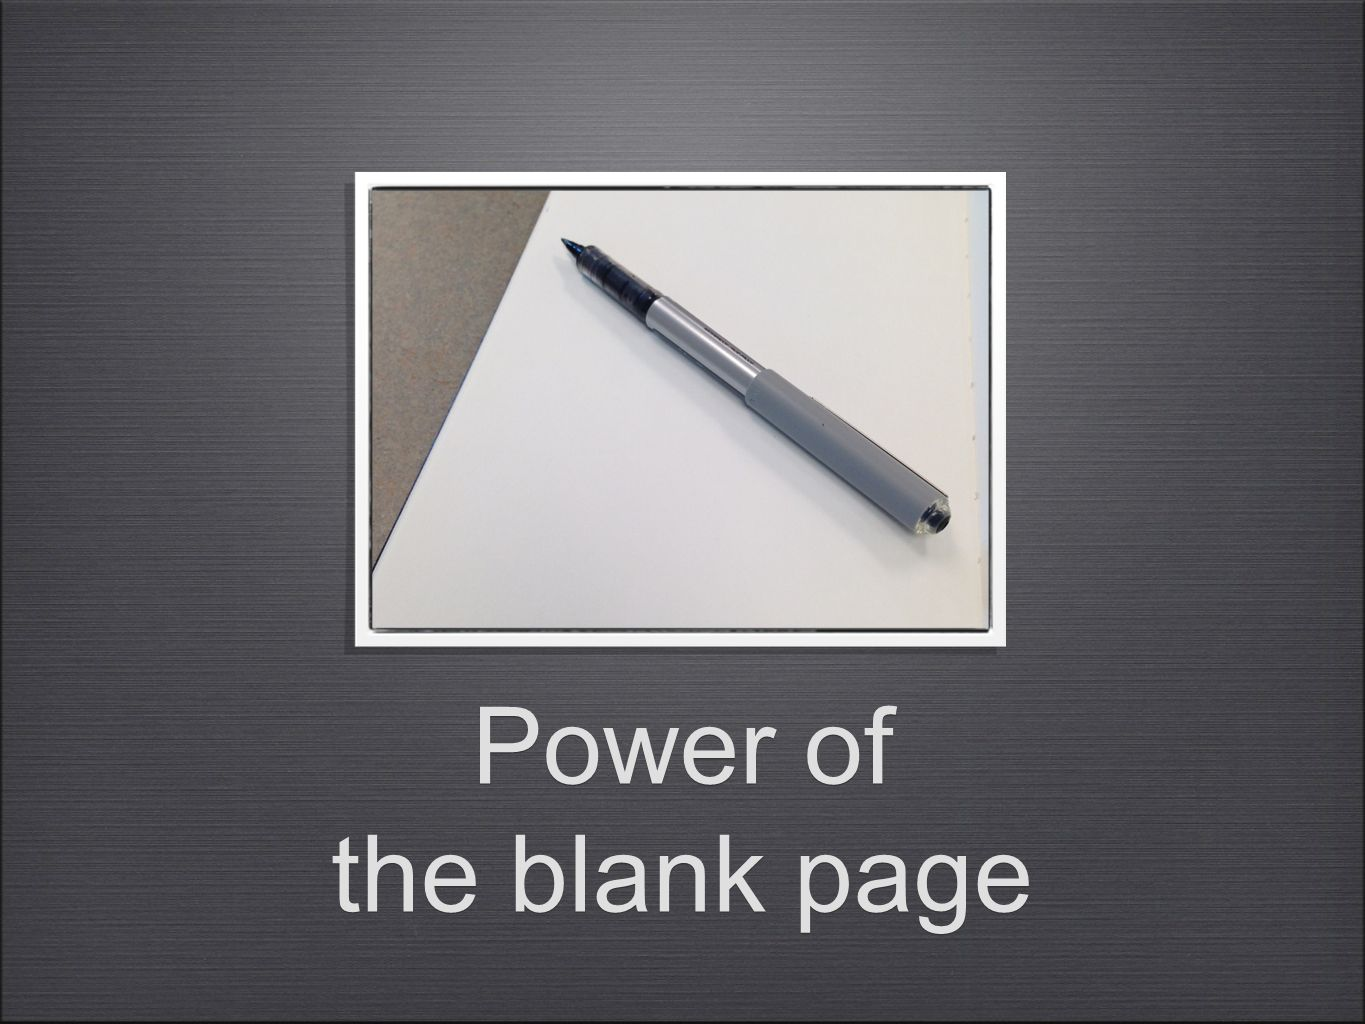 Power of the blank page